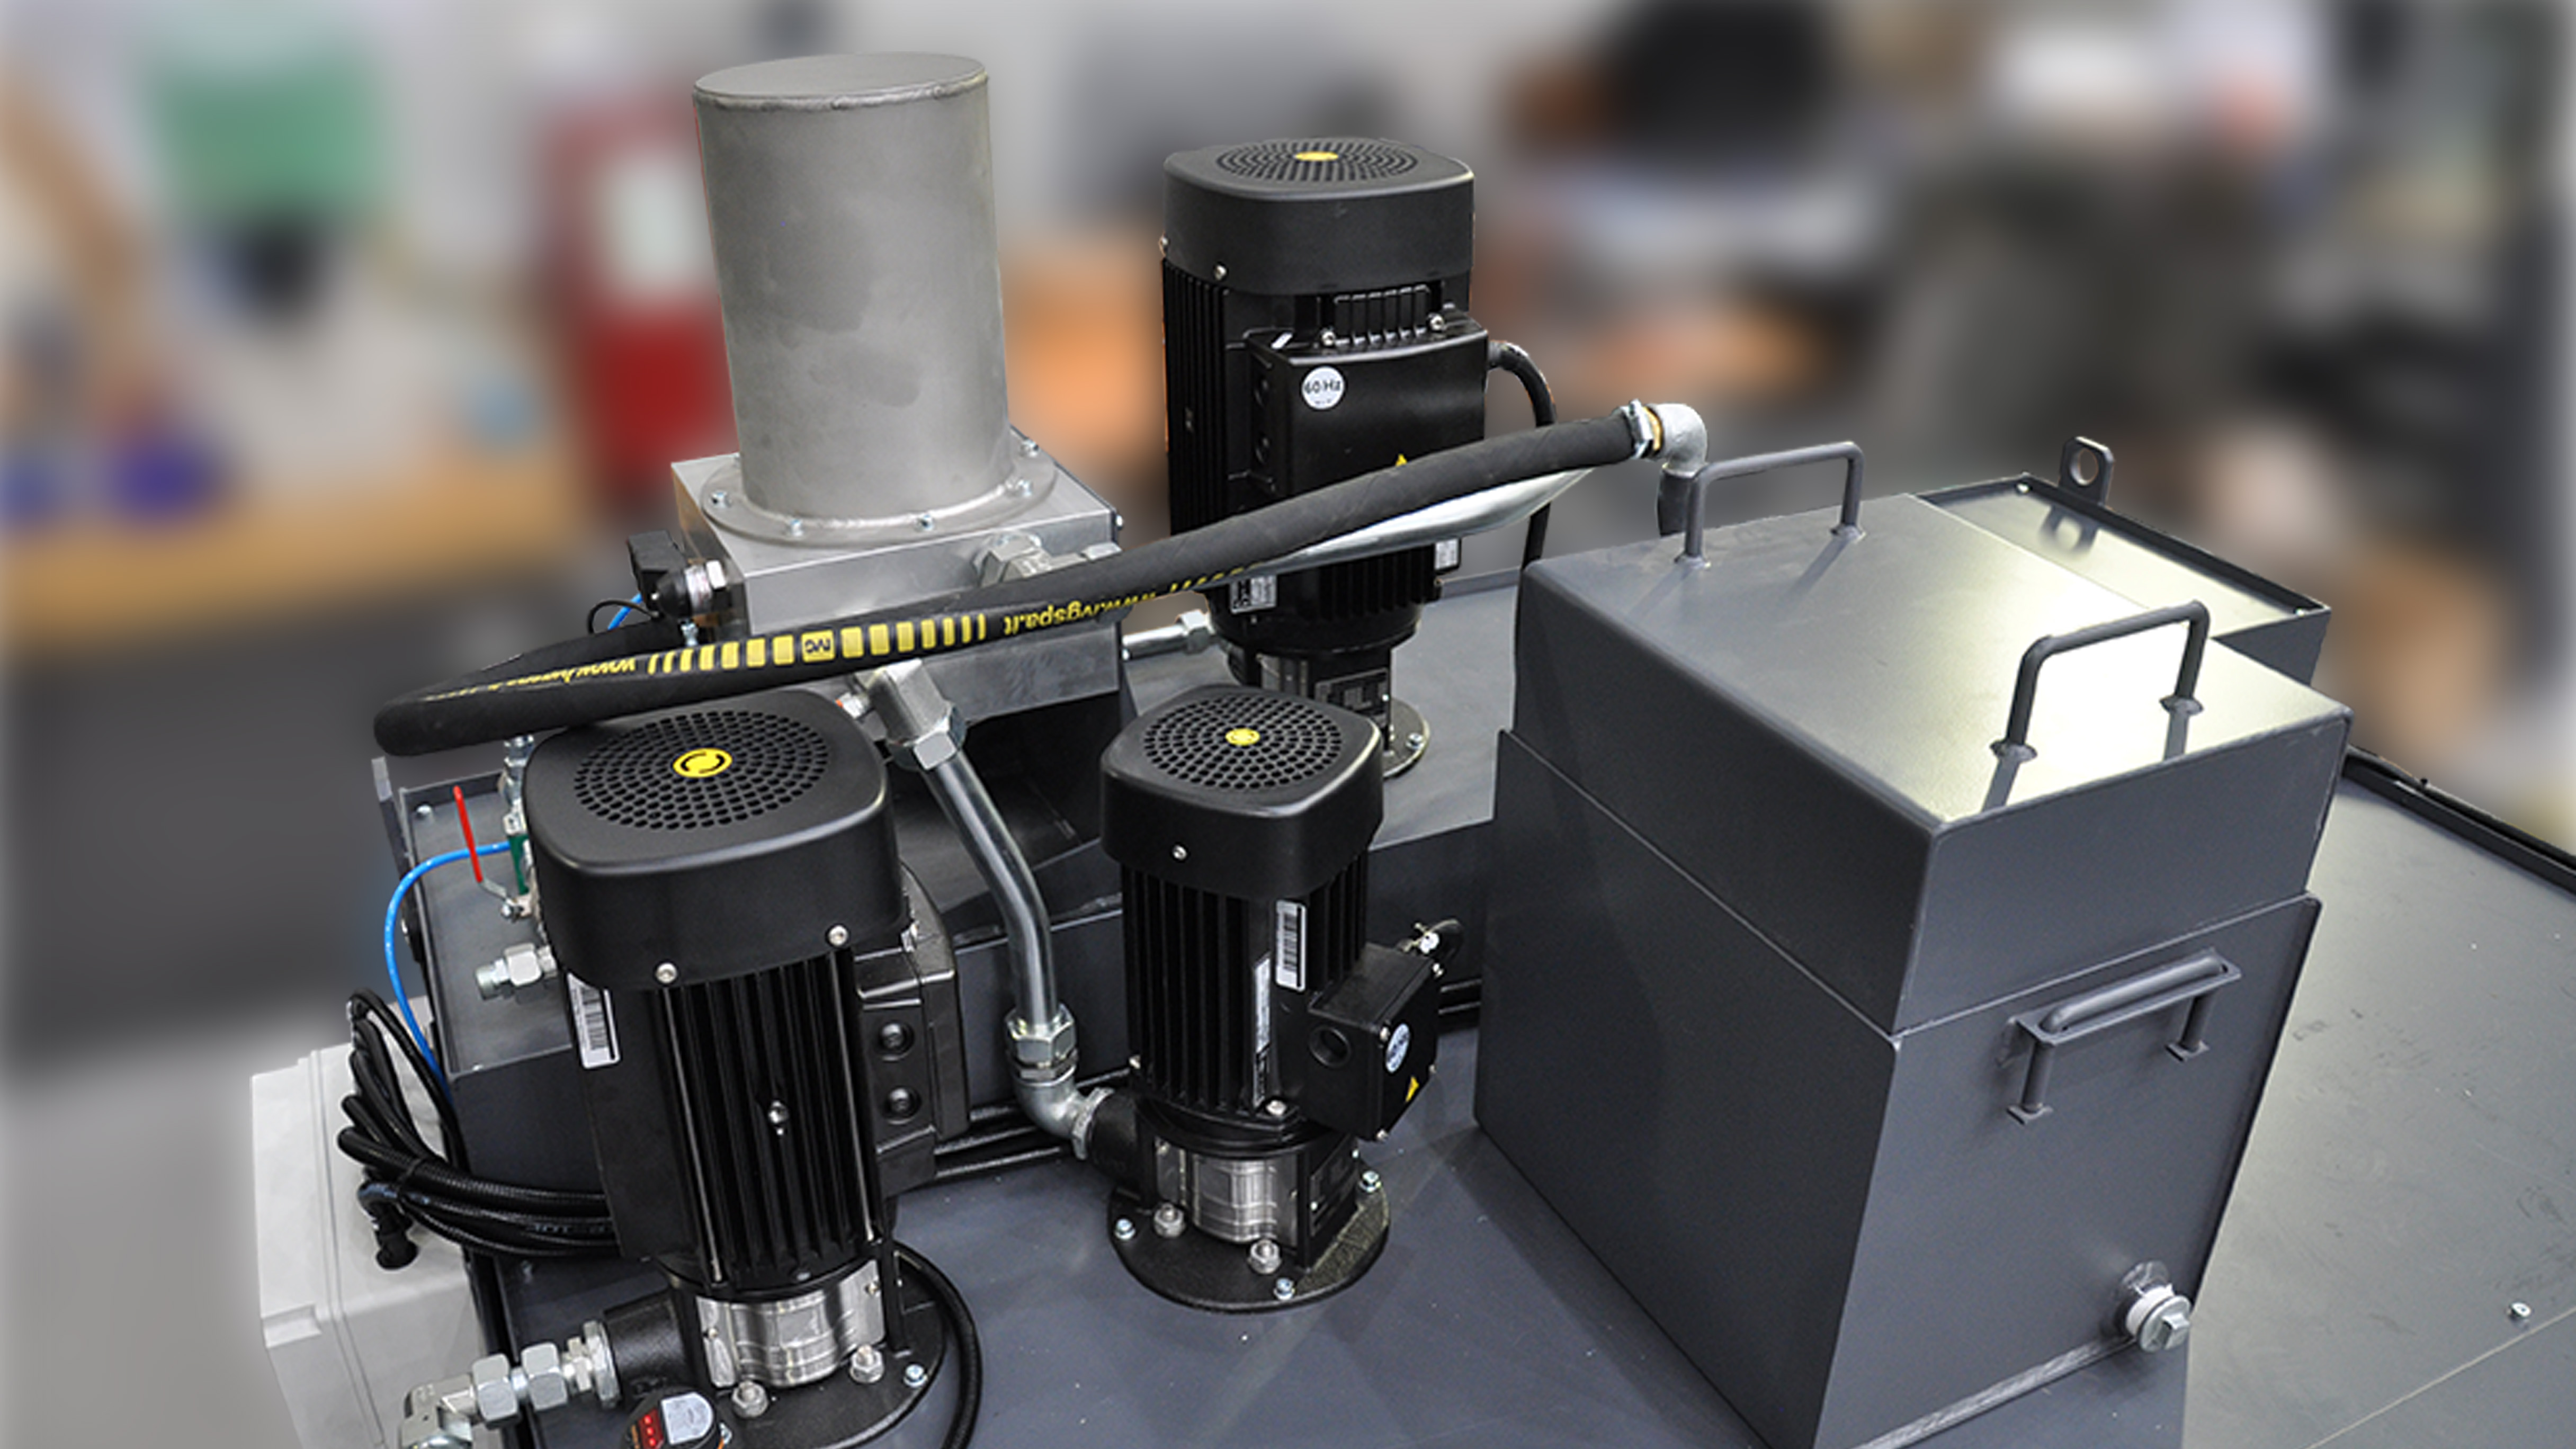 Cooling of Tools with Sleeve Filtration - Image1